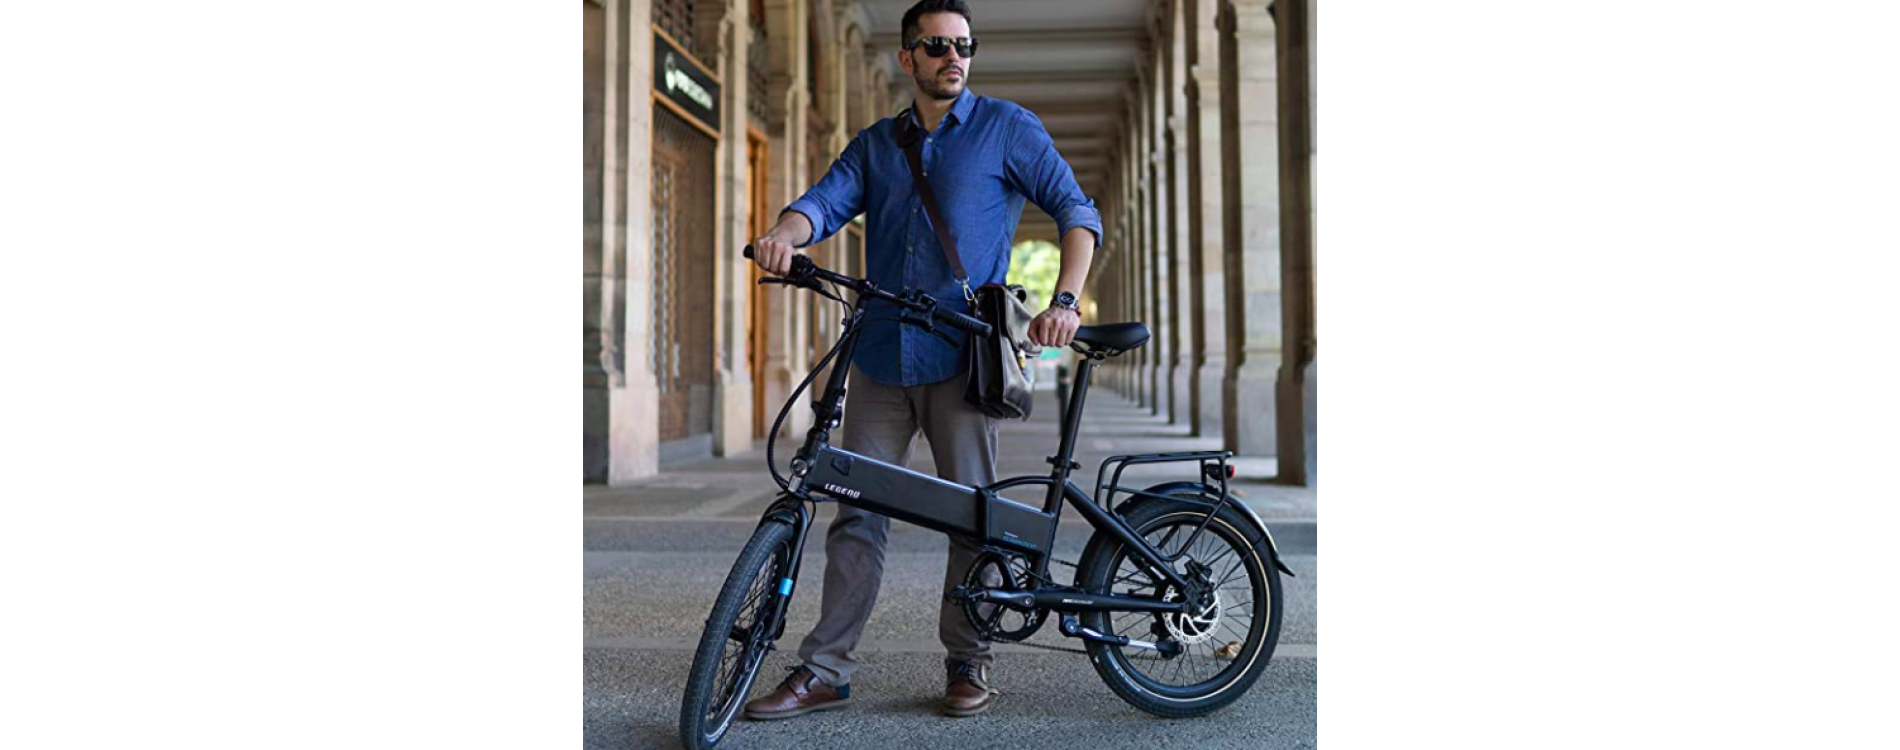 Monza Electric Bike